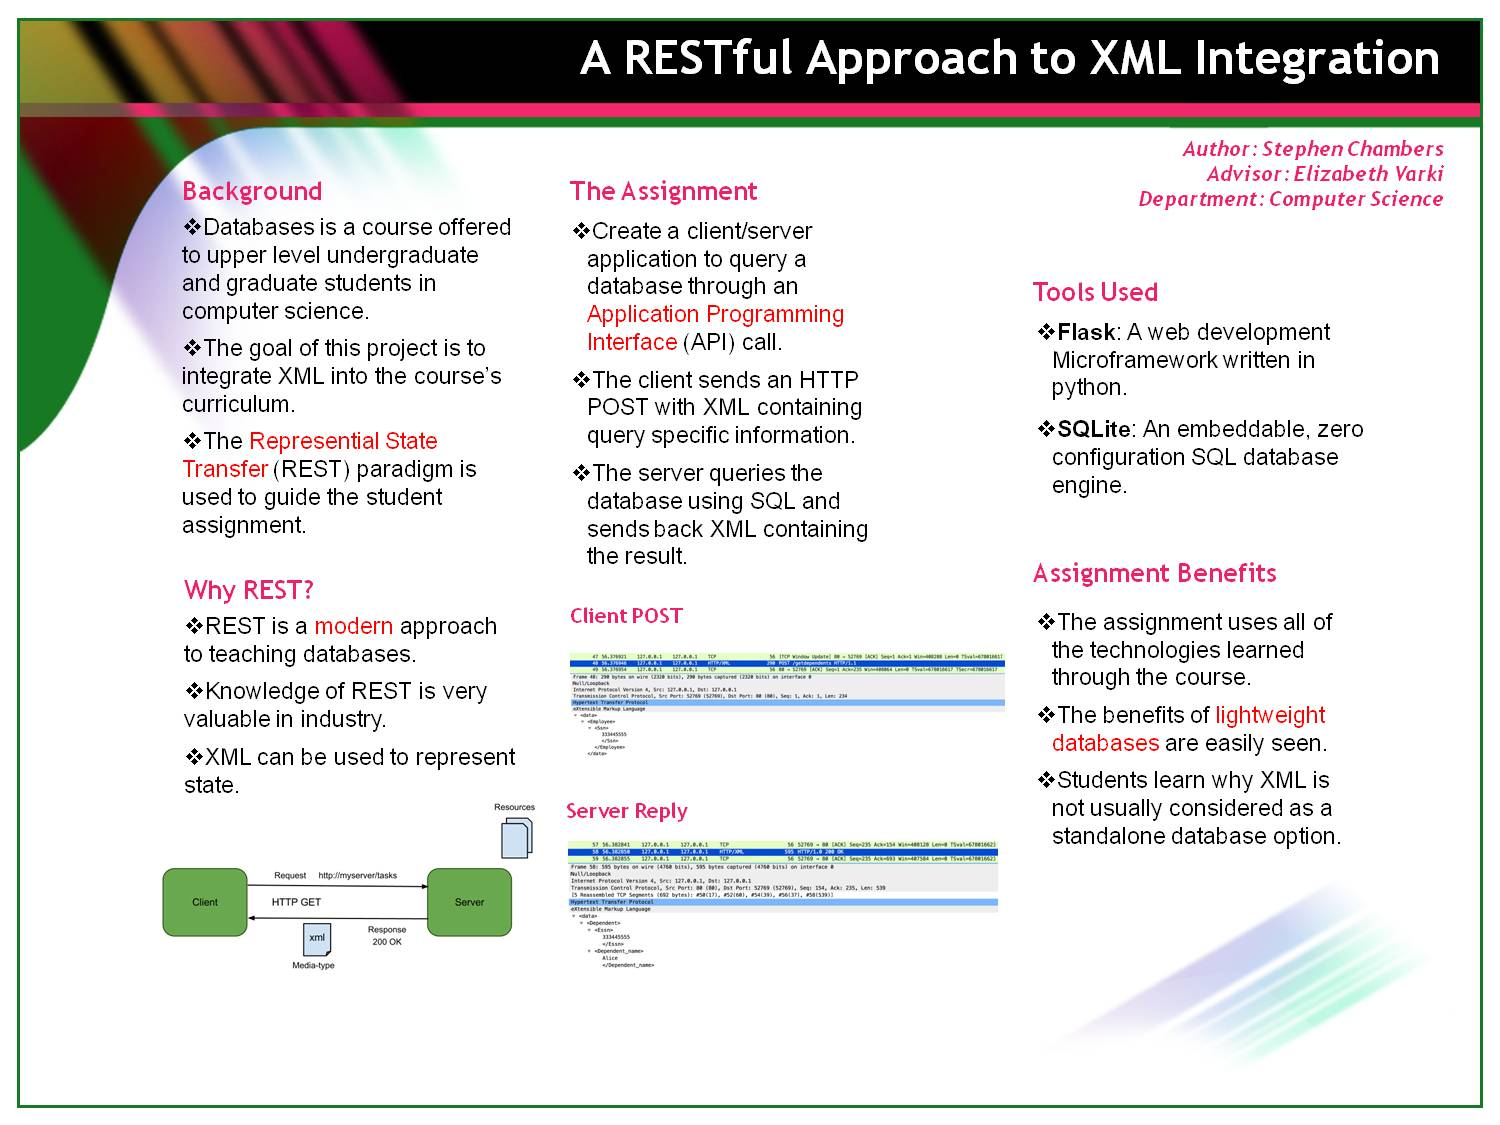 A Restful Approach To Xml Integration by smx227